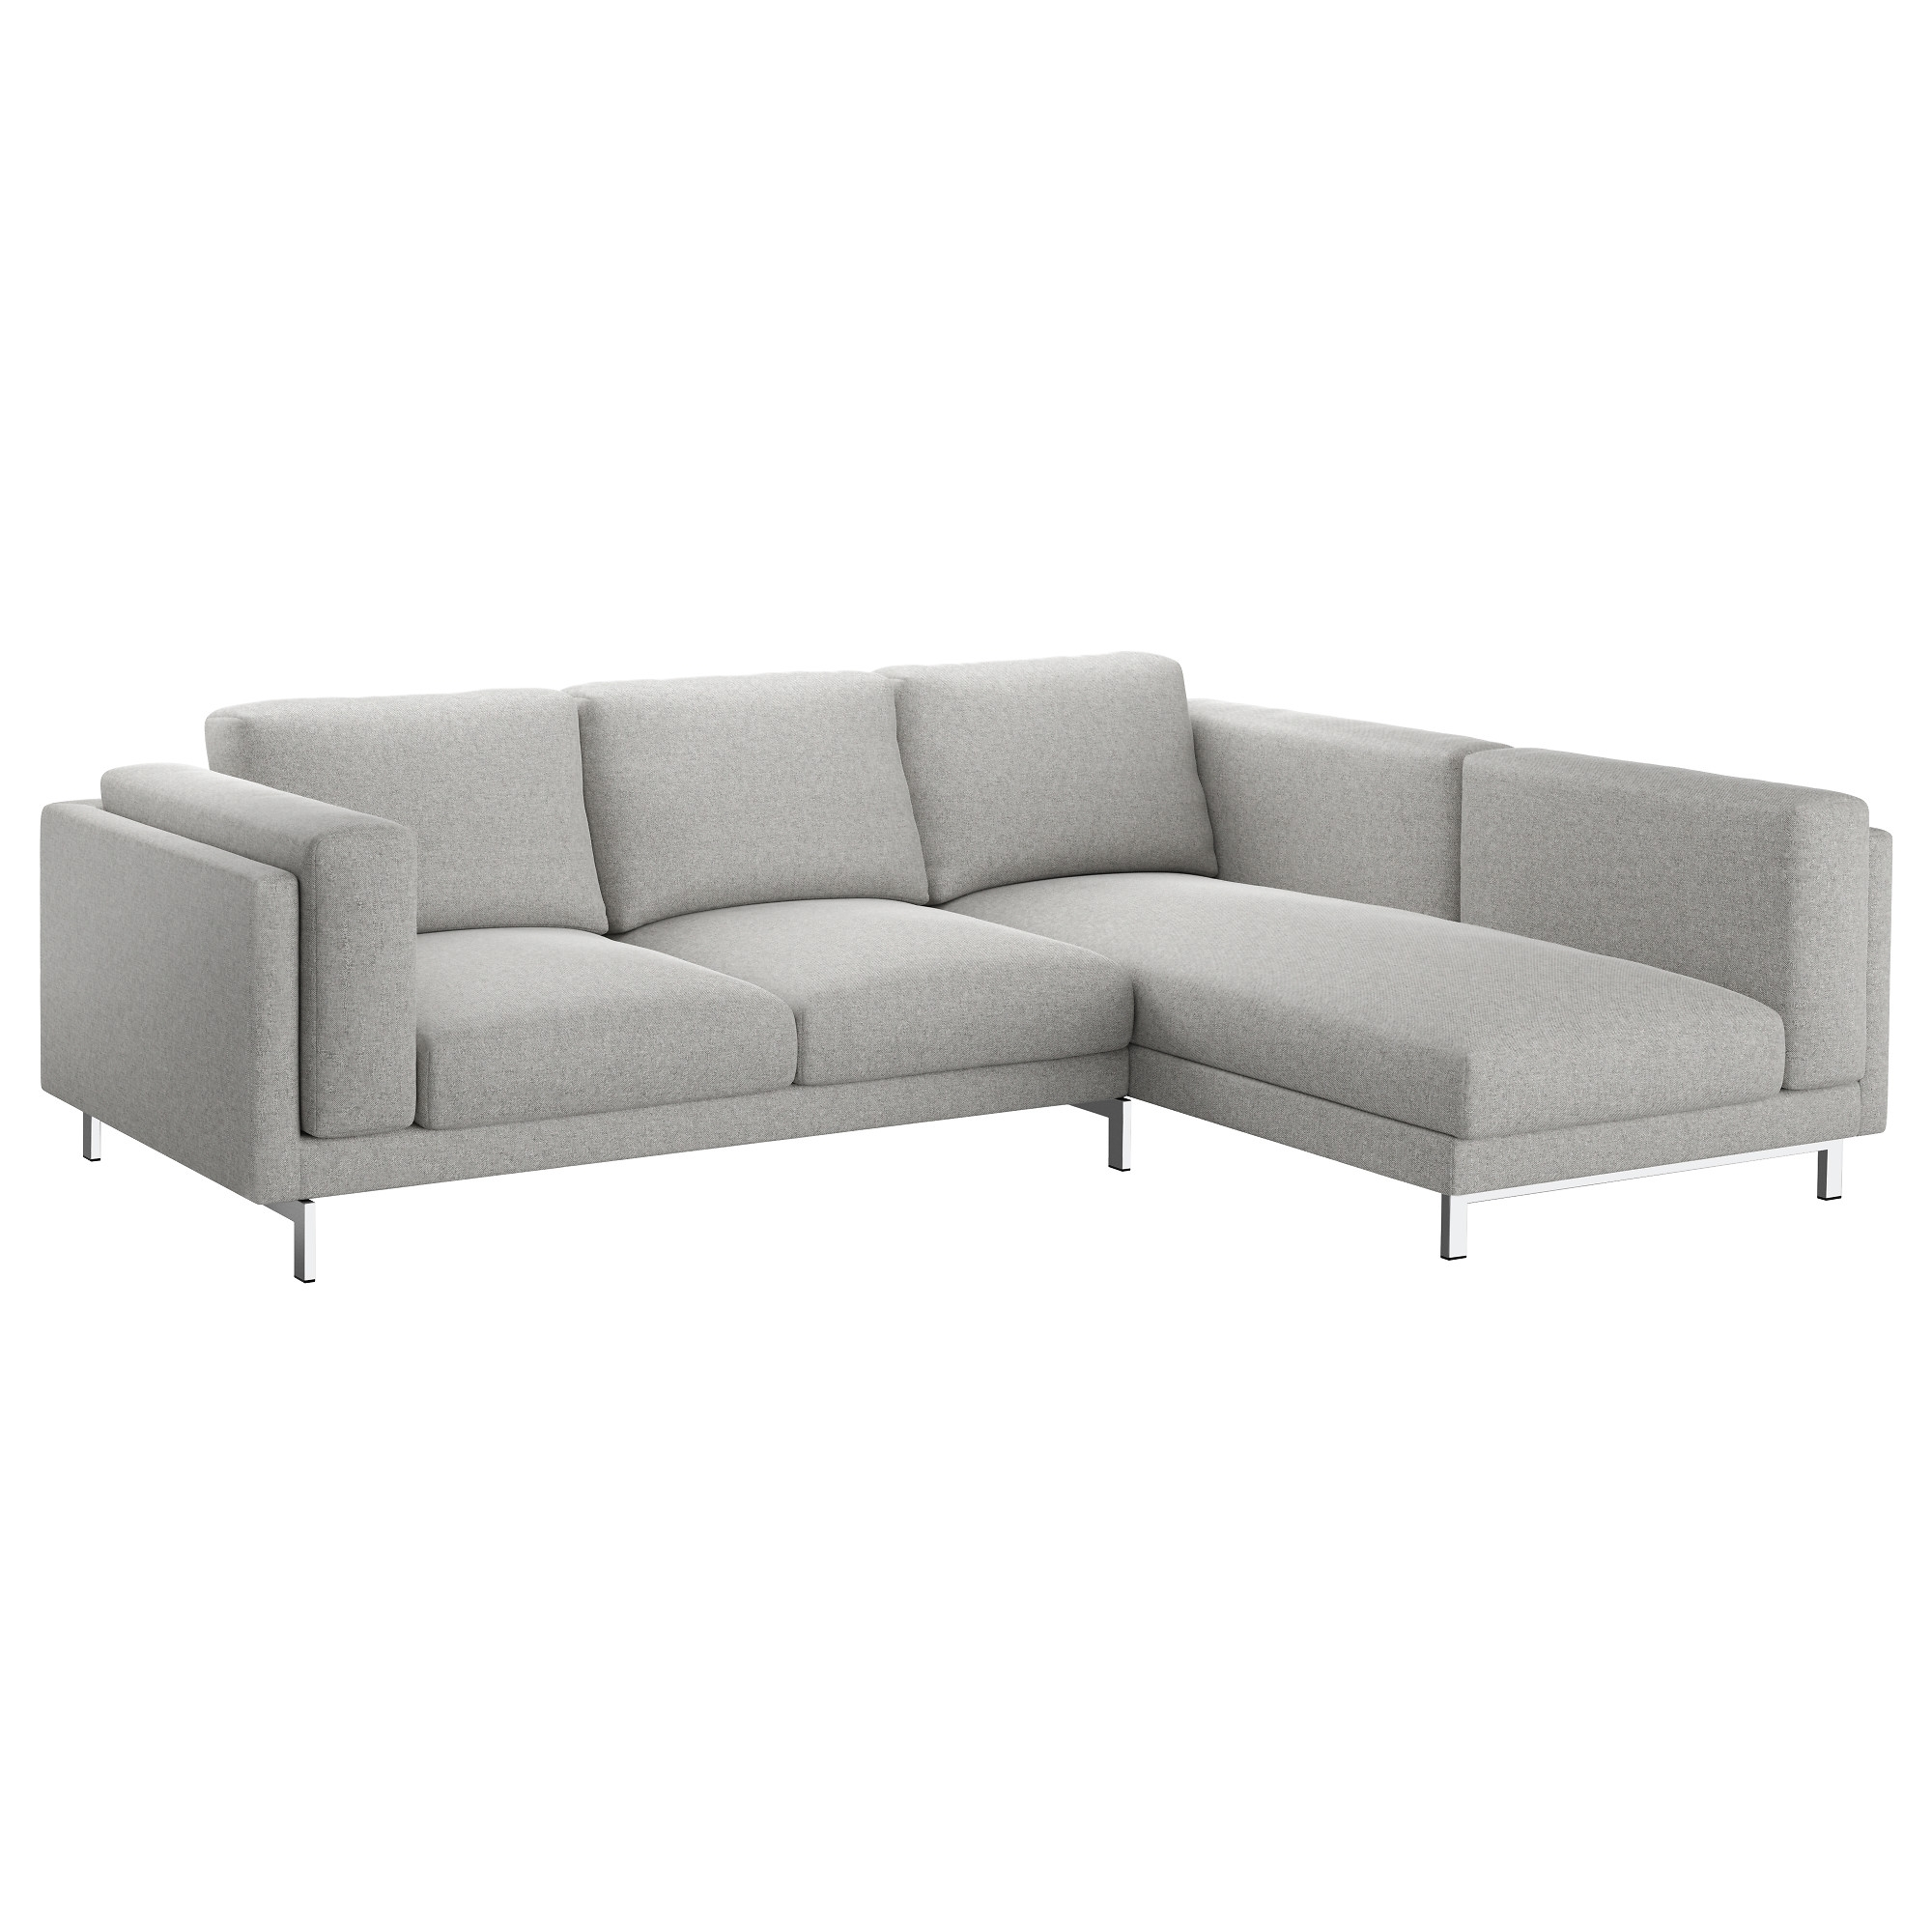 Preferred Ikea Chaise Sofas For Sofa: Unique Cheap Chaise Sofa Cheap Chaise Lounge, Couches Ikea (View 11 of 15)